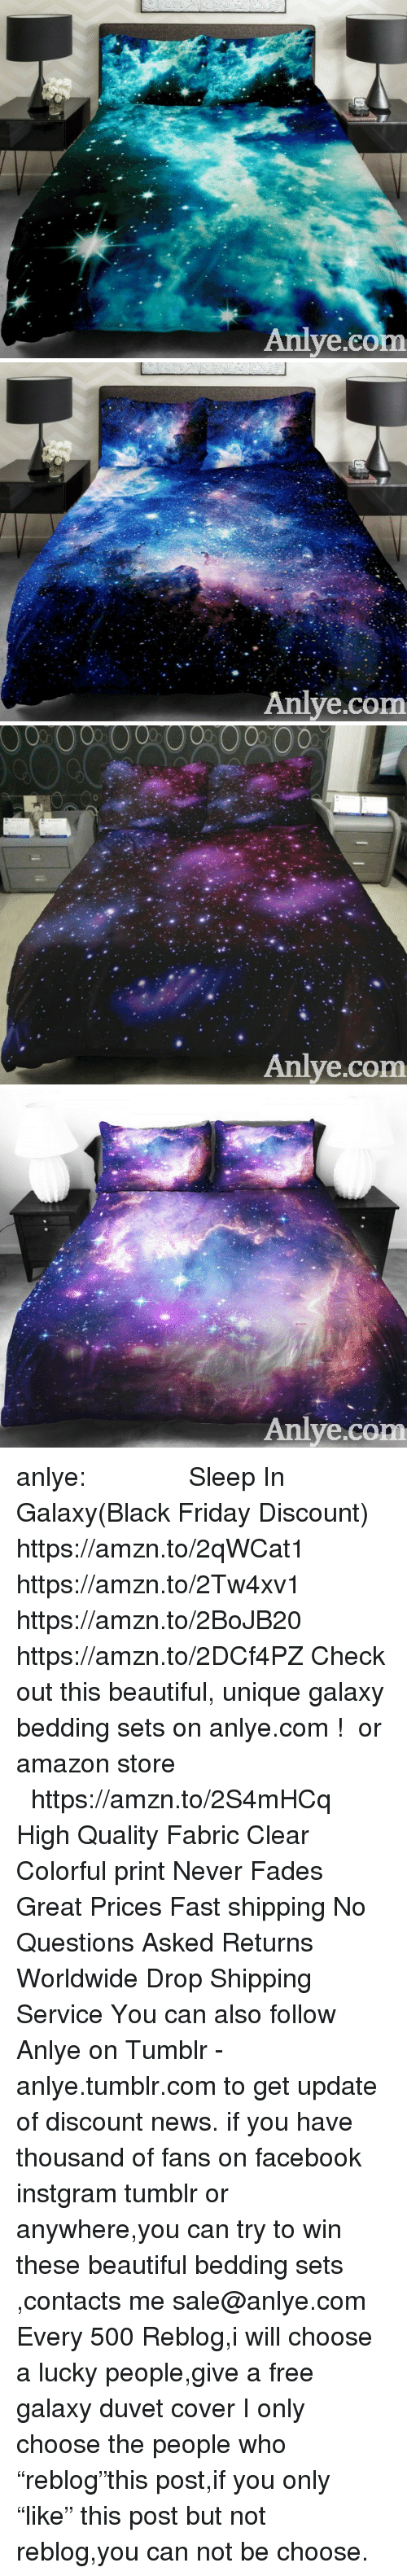 "bedding: Aniye.co   Anlye.com   00  00  00  002000  0  Anlye.com   Anlye.com anlye:              Sleep In Galaxy(Black Friday Discount)  https://amzn.to/2qWCat1 https://amzn.to/2Tw4xv1 https://amzn.to/2BoJB20 https://amzn.to/2DCf4PZ Check out this beautiful, unique galaxy bedding sets on anlye.com !  or amazon store    https://amzn.to/2S4mHCq High Quality Fabric Clear  Colorful print Never Fades Great Prices Fast shipping No Questions Asked Returns Worldwide Drop Shipping Service You can also follow Anlye on Tumblr - anlye.tumblr.com to get update of discount news. if you have thousand of fans on facebook instgram tumblr or anywhere,you can try to win these beautiful bedding sets ,contacts me sale@anlye.com Every 500 Reblog,i will choose a lucky people,give a free galaxy duvet cover I only choose the people who ""reblog""this post,if you only ""like"" this post but not reblog,you can not be choose."